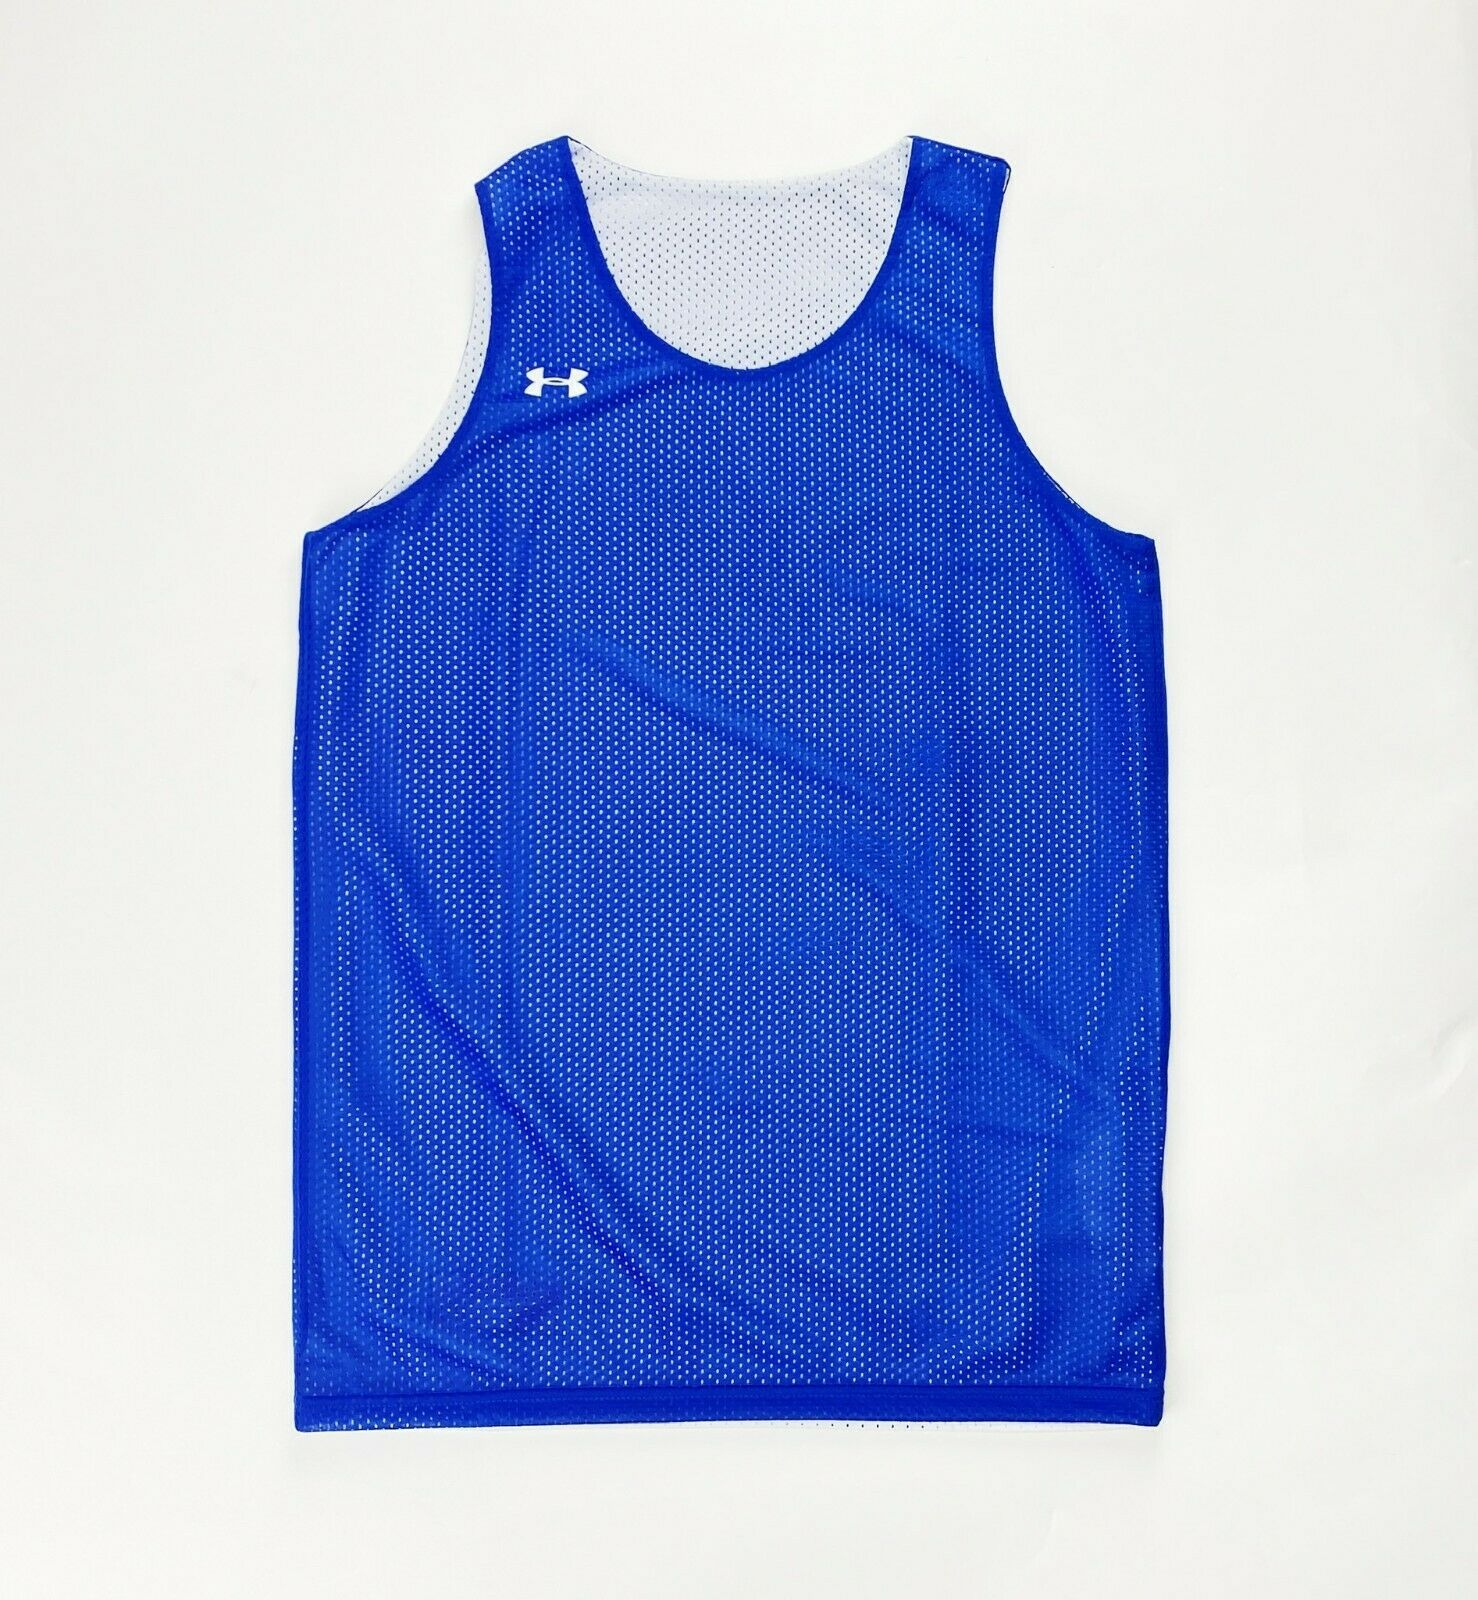 Primary image for Under Armour Reversible Basketball Jersey Youth Unisex Boy Girl L XL Blue White